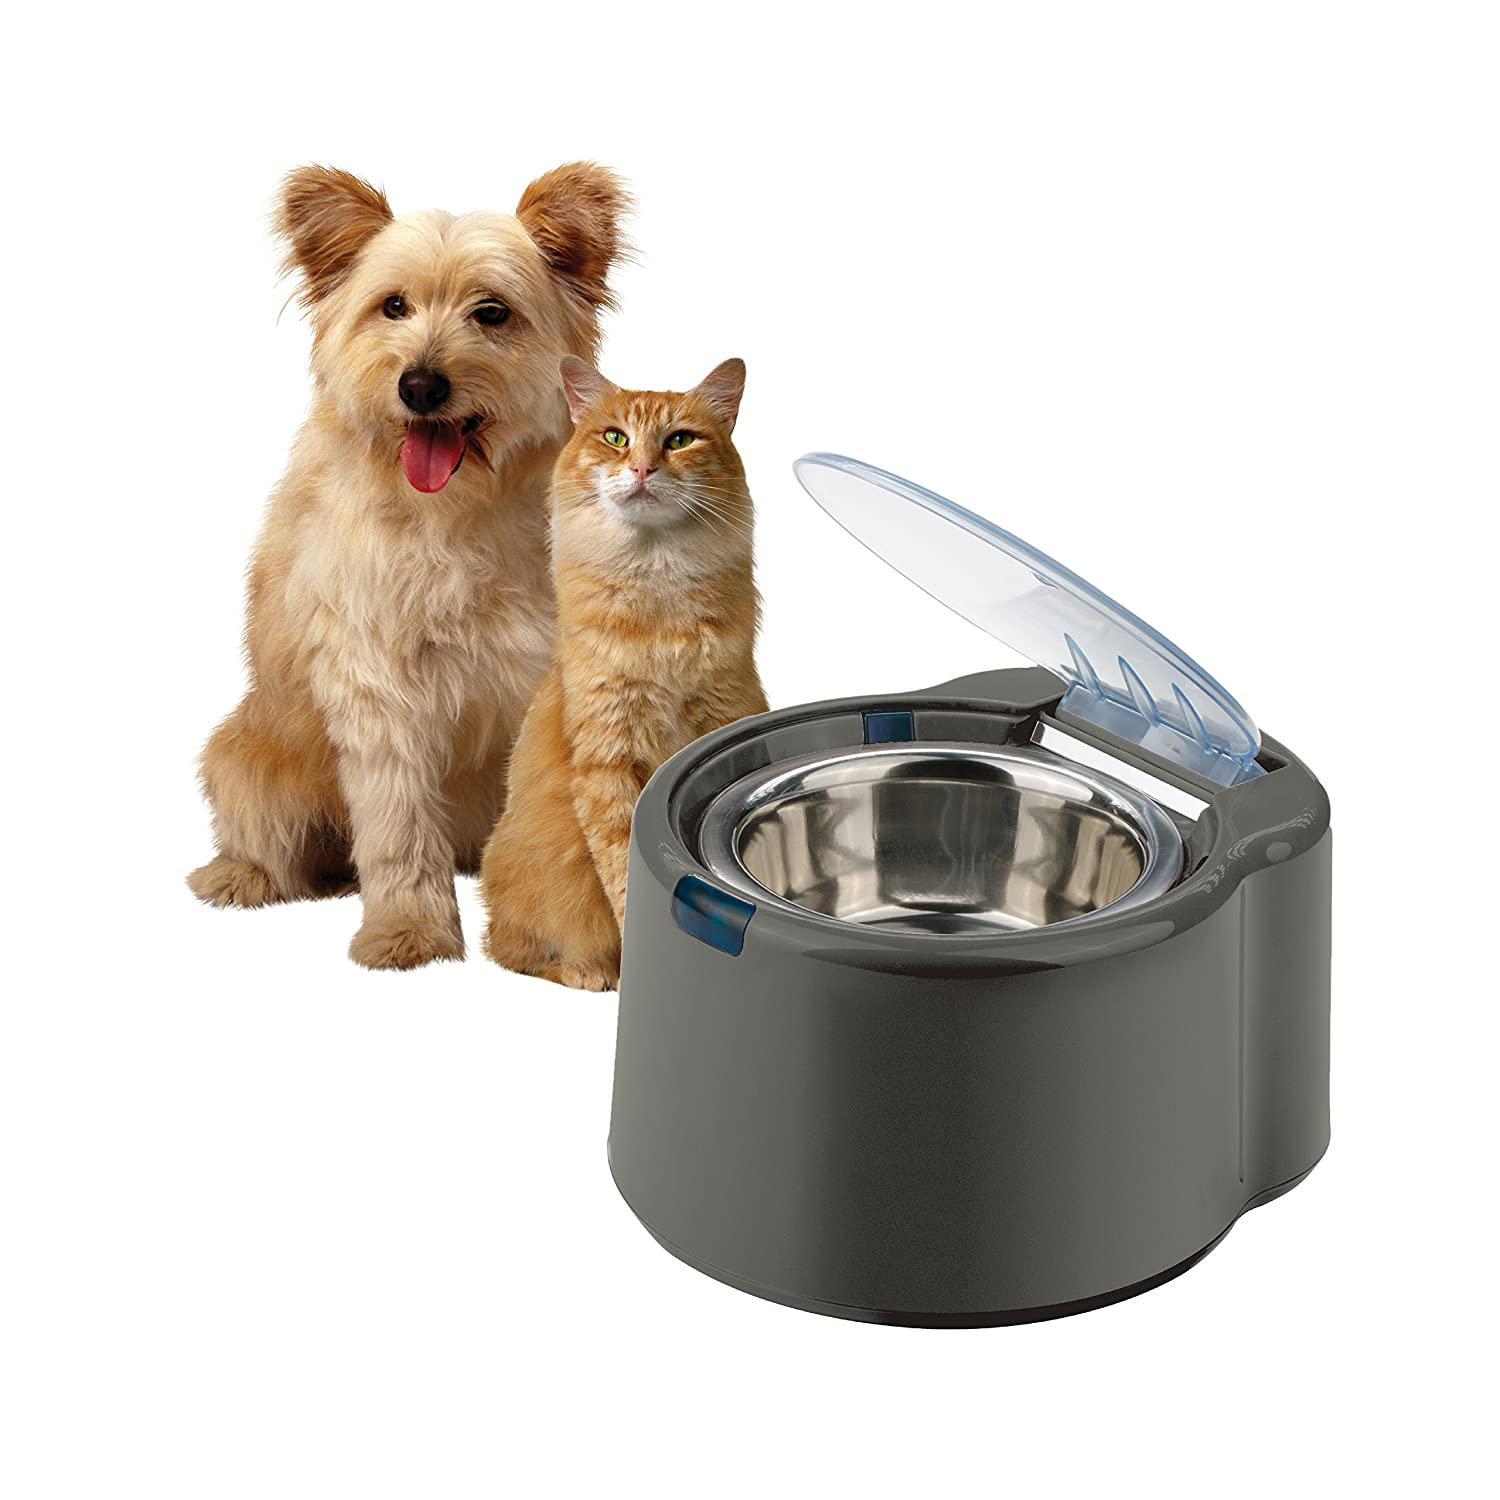 feed healthy for way bowl adapter dp dog supplies two splitter petsafe timer attachment pet simply feeder automatic